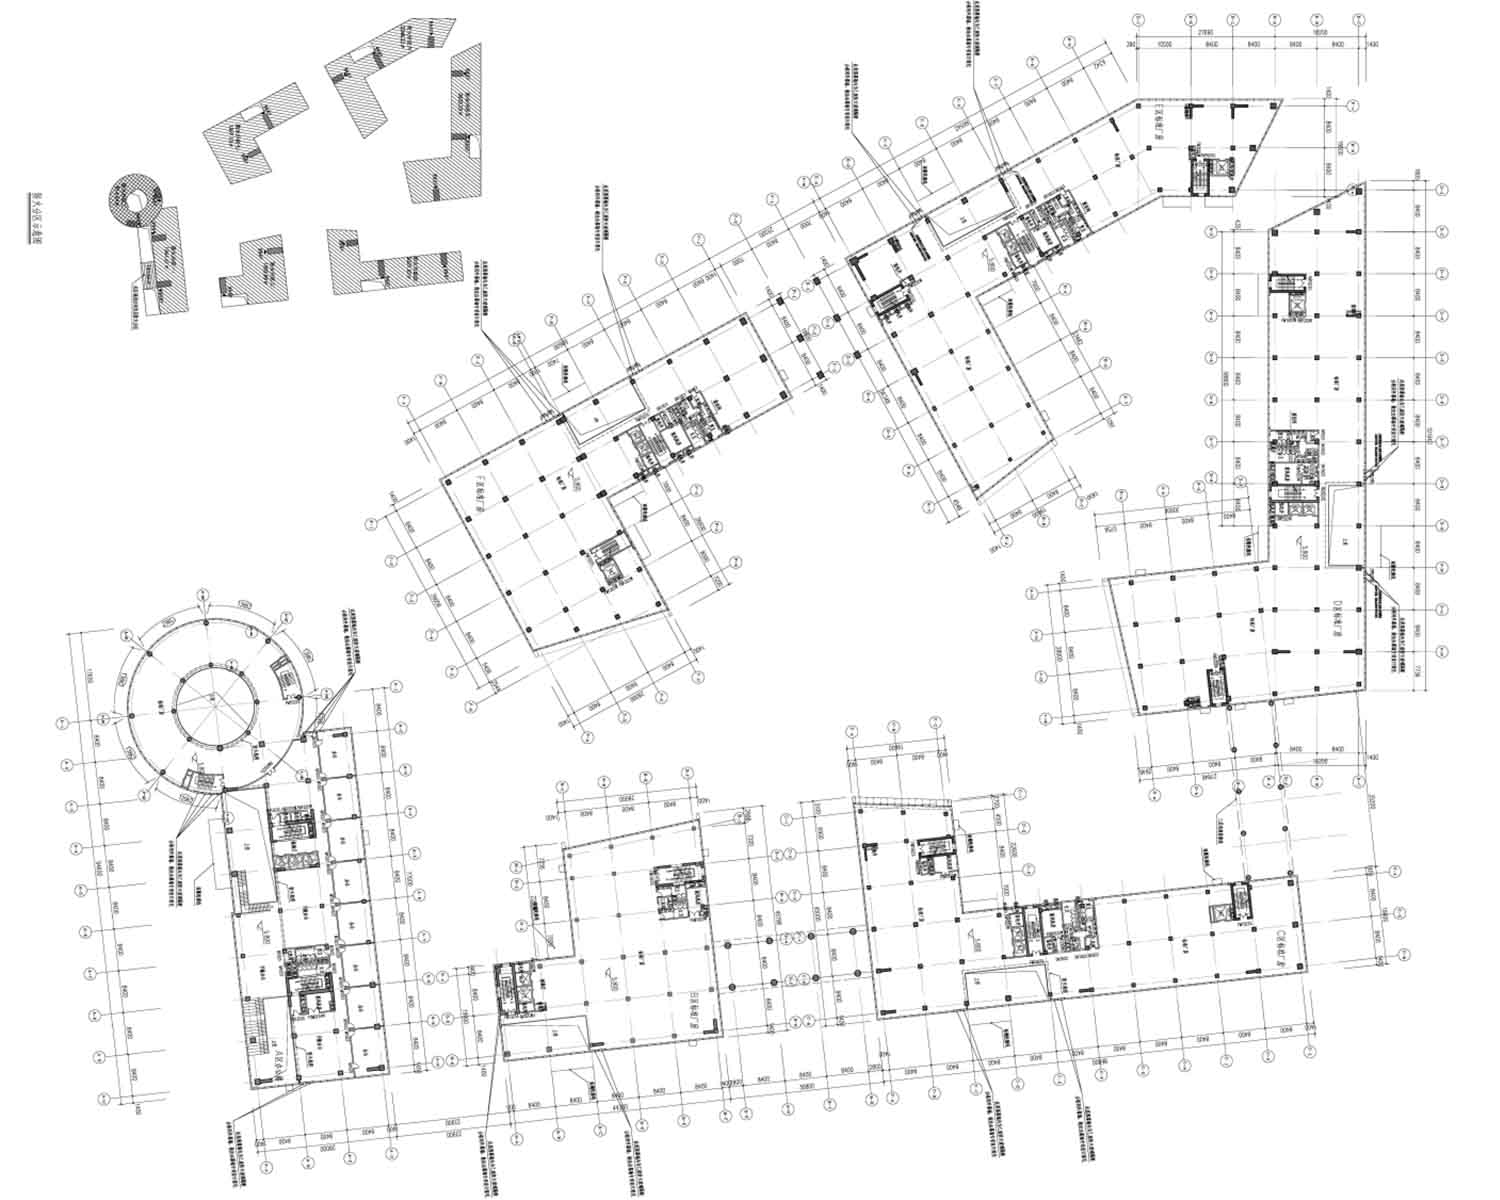 Floor Plan No copyright issues}